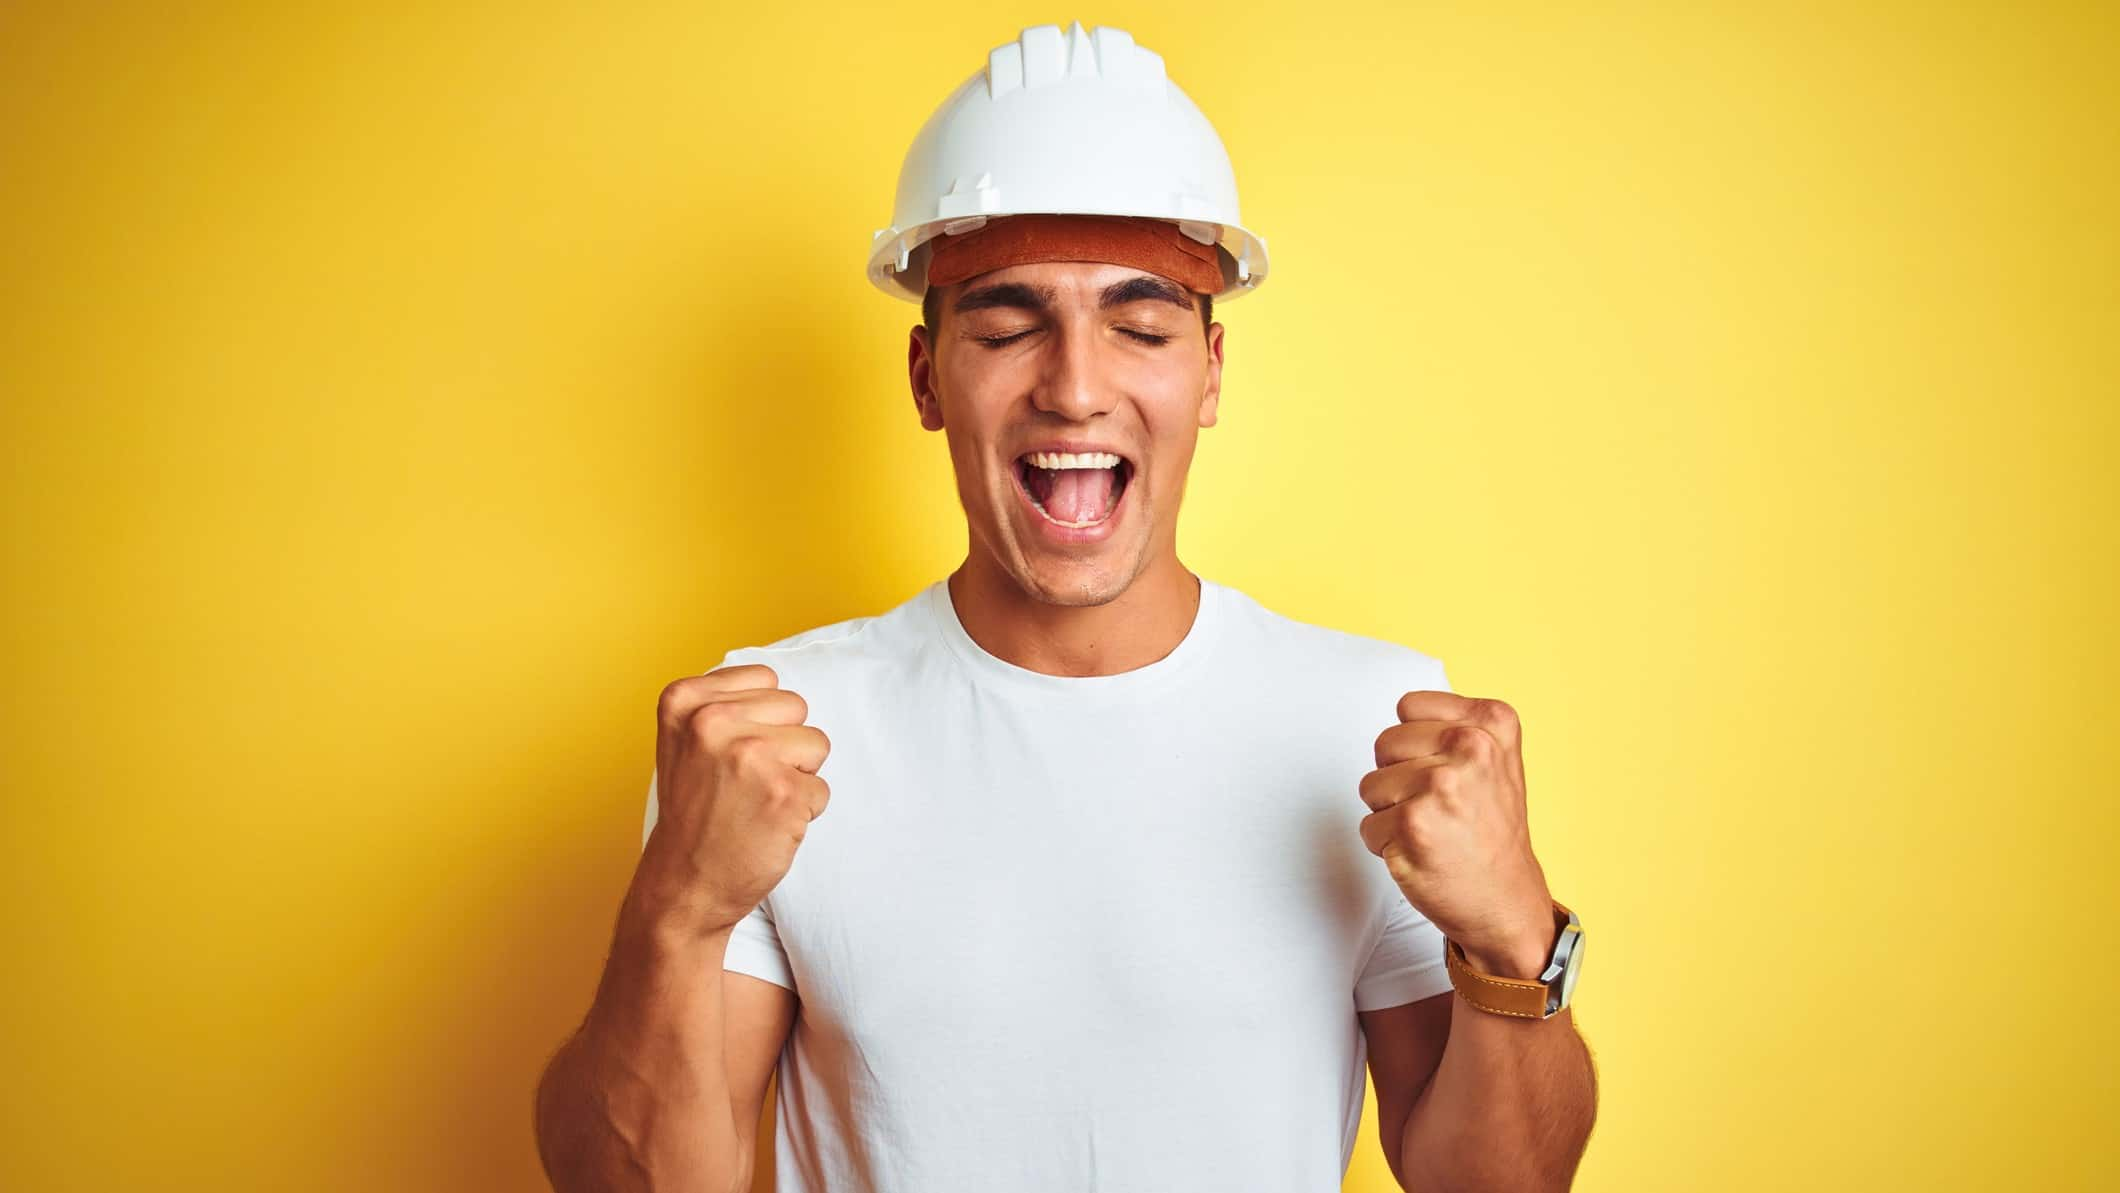 Man in mining hat with fists raised and eyes closed looking happy and excited about some news